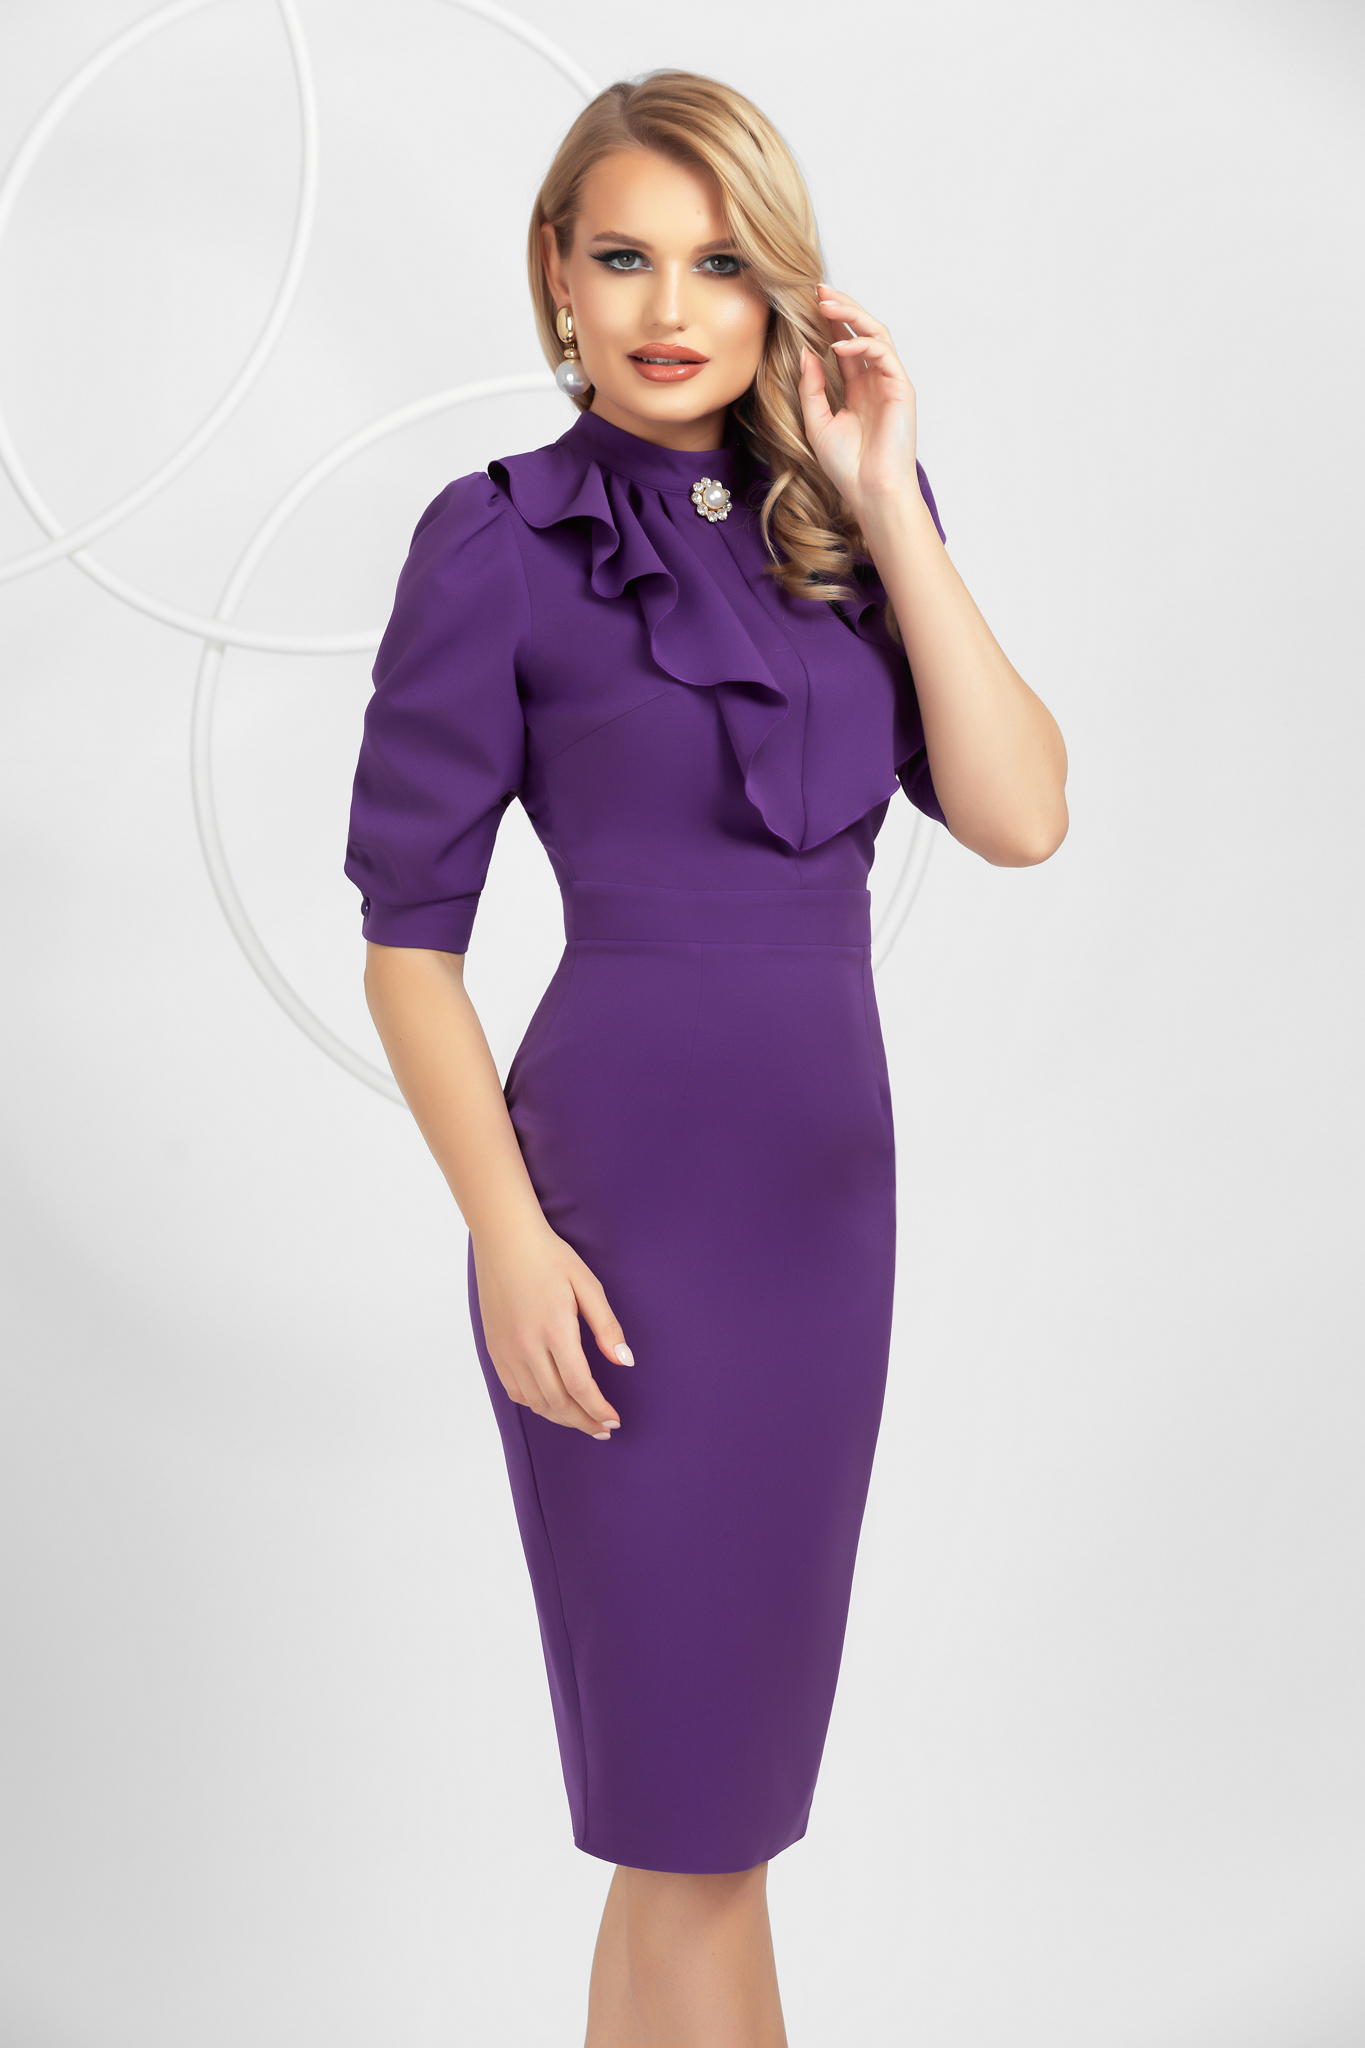 Purple slightly elastic fabric pencil dress with ruffle details accessorized with breastpin